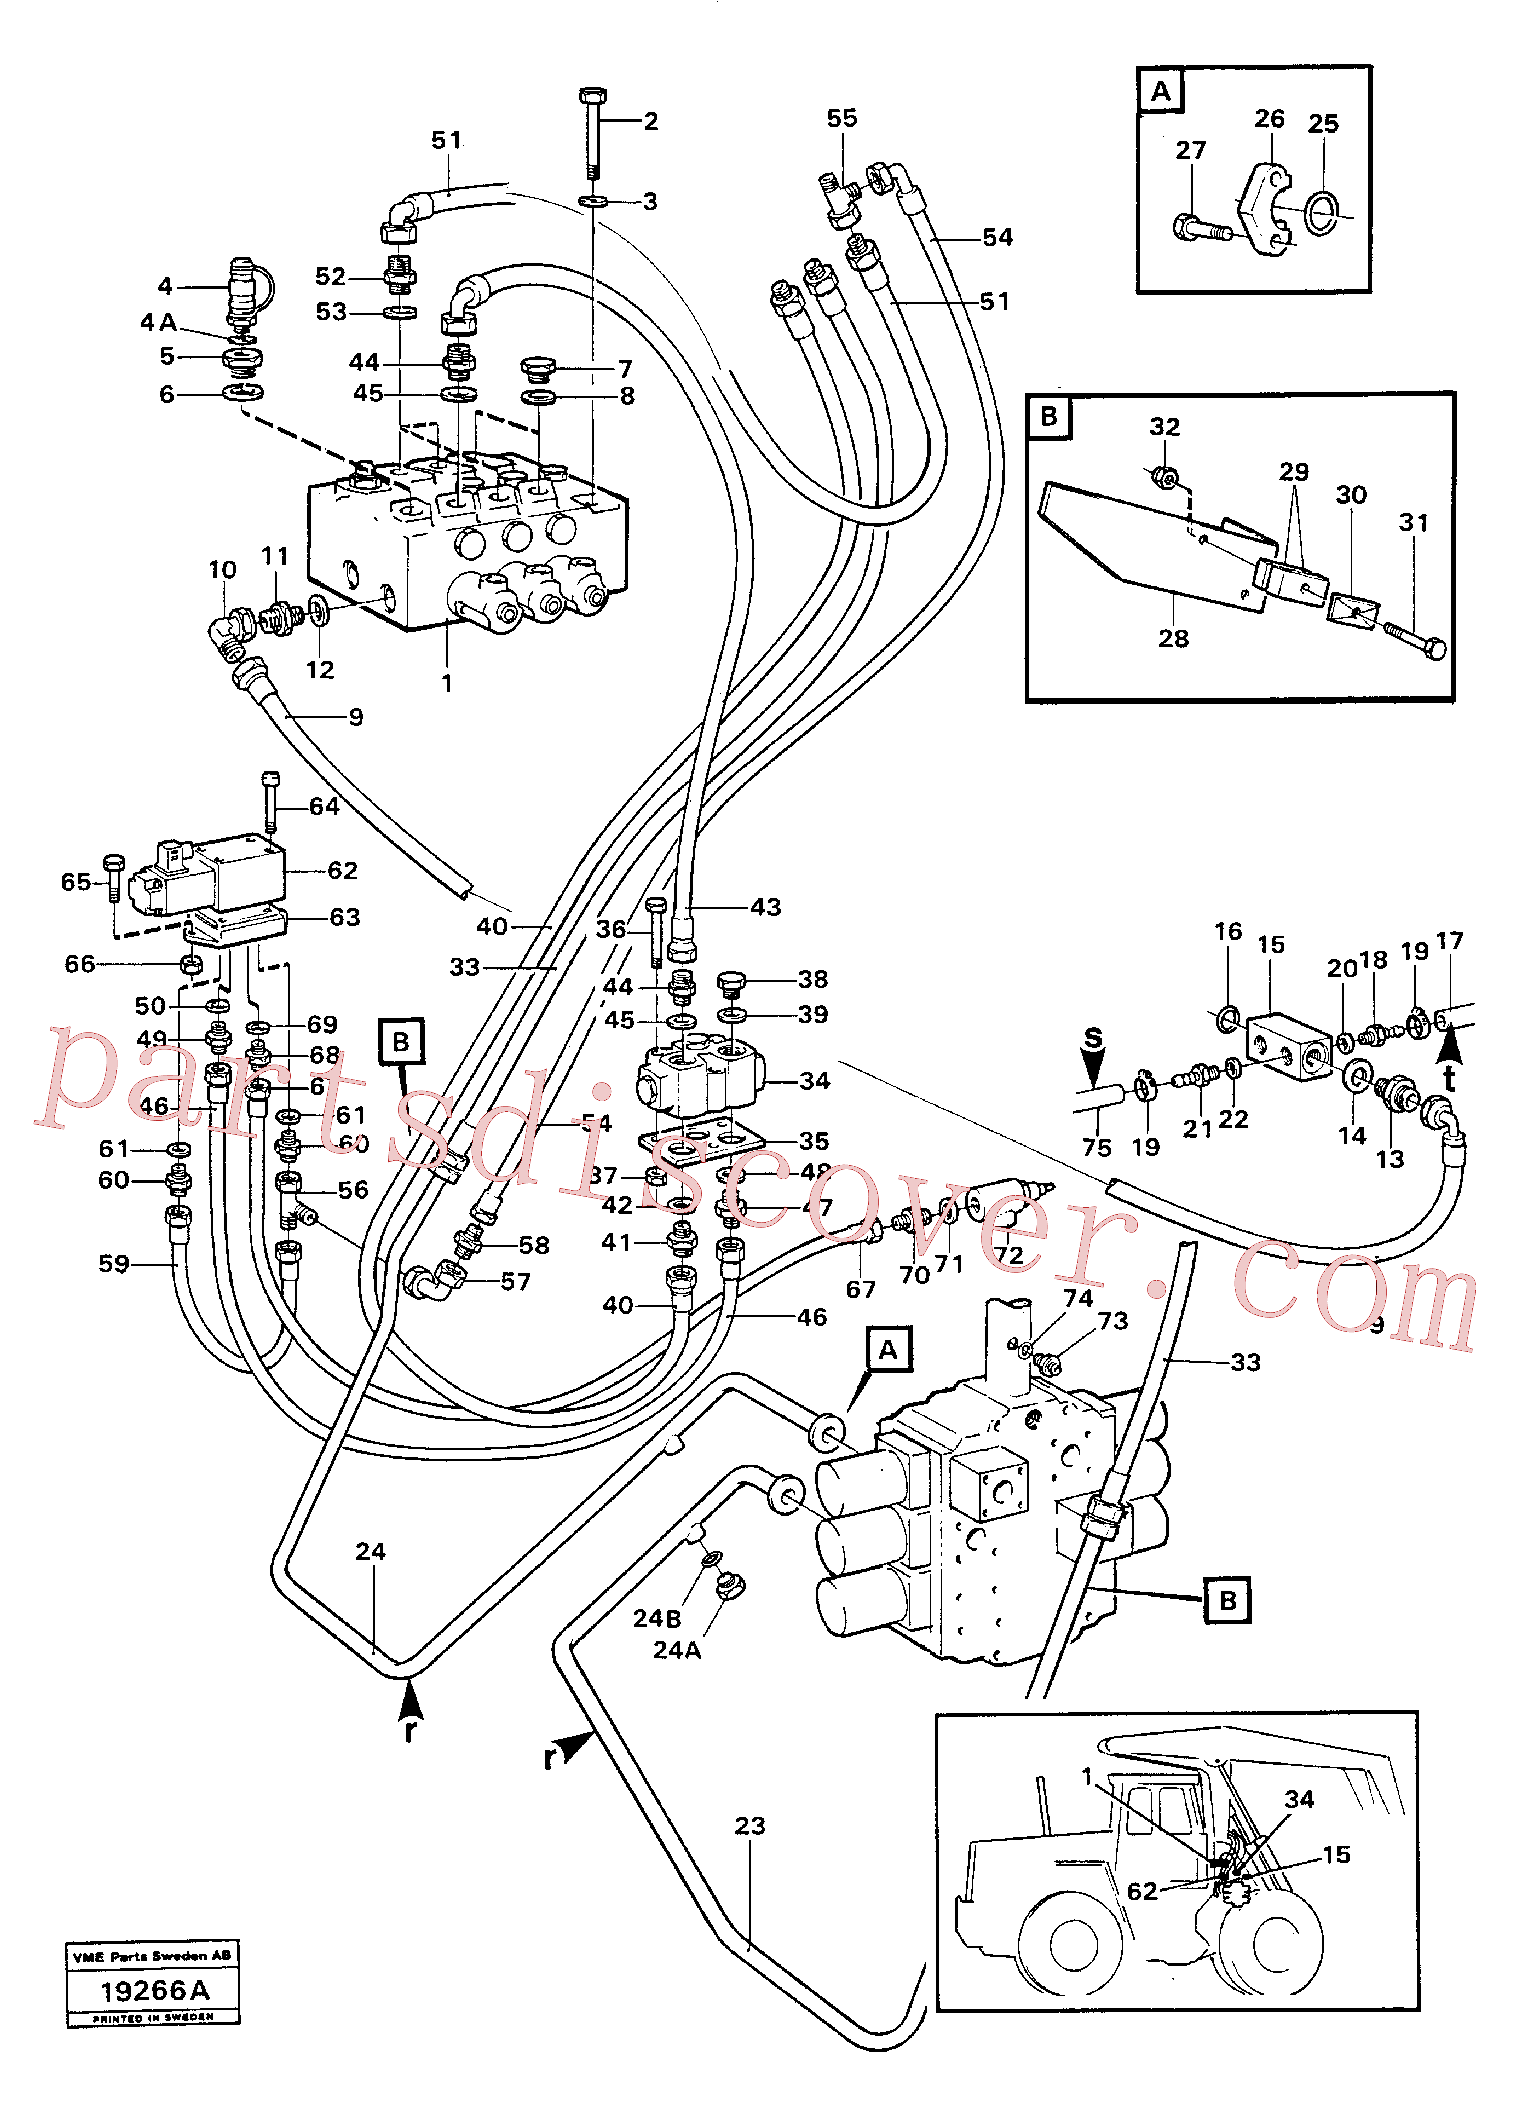 SA9512-02120 for Volvo Hydraulic system.(19266A assembly)